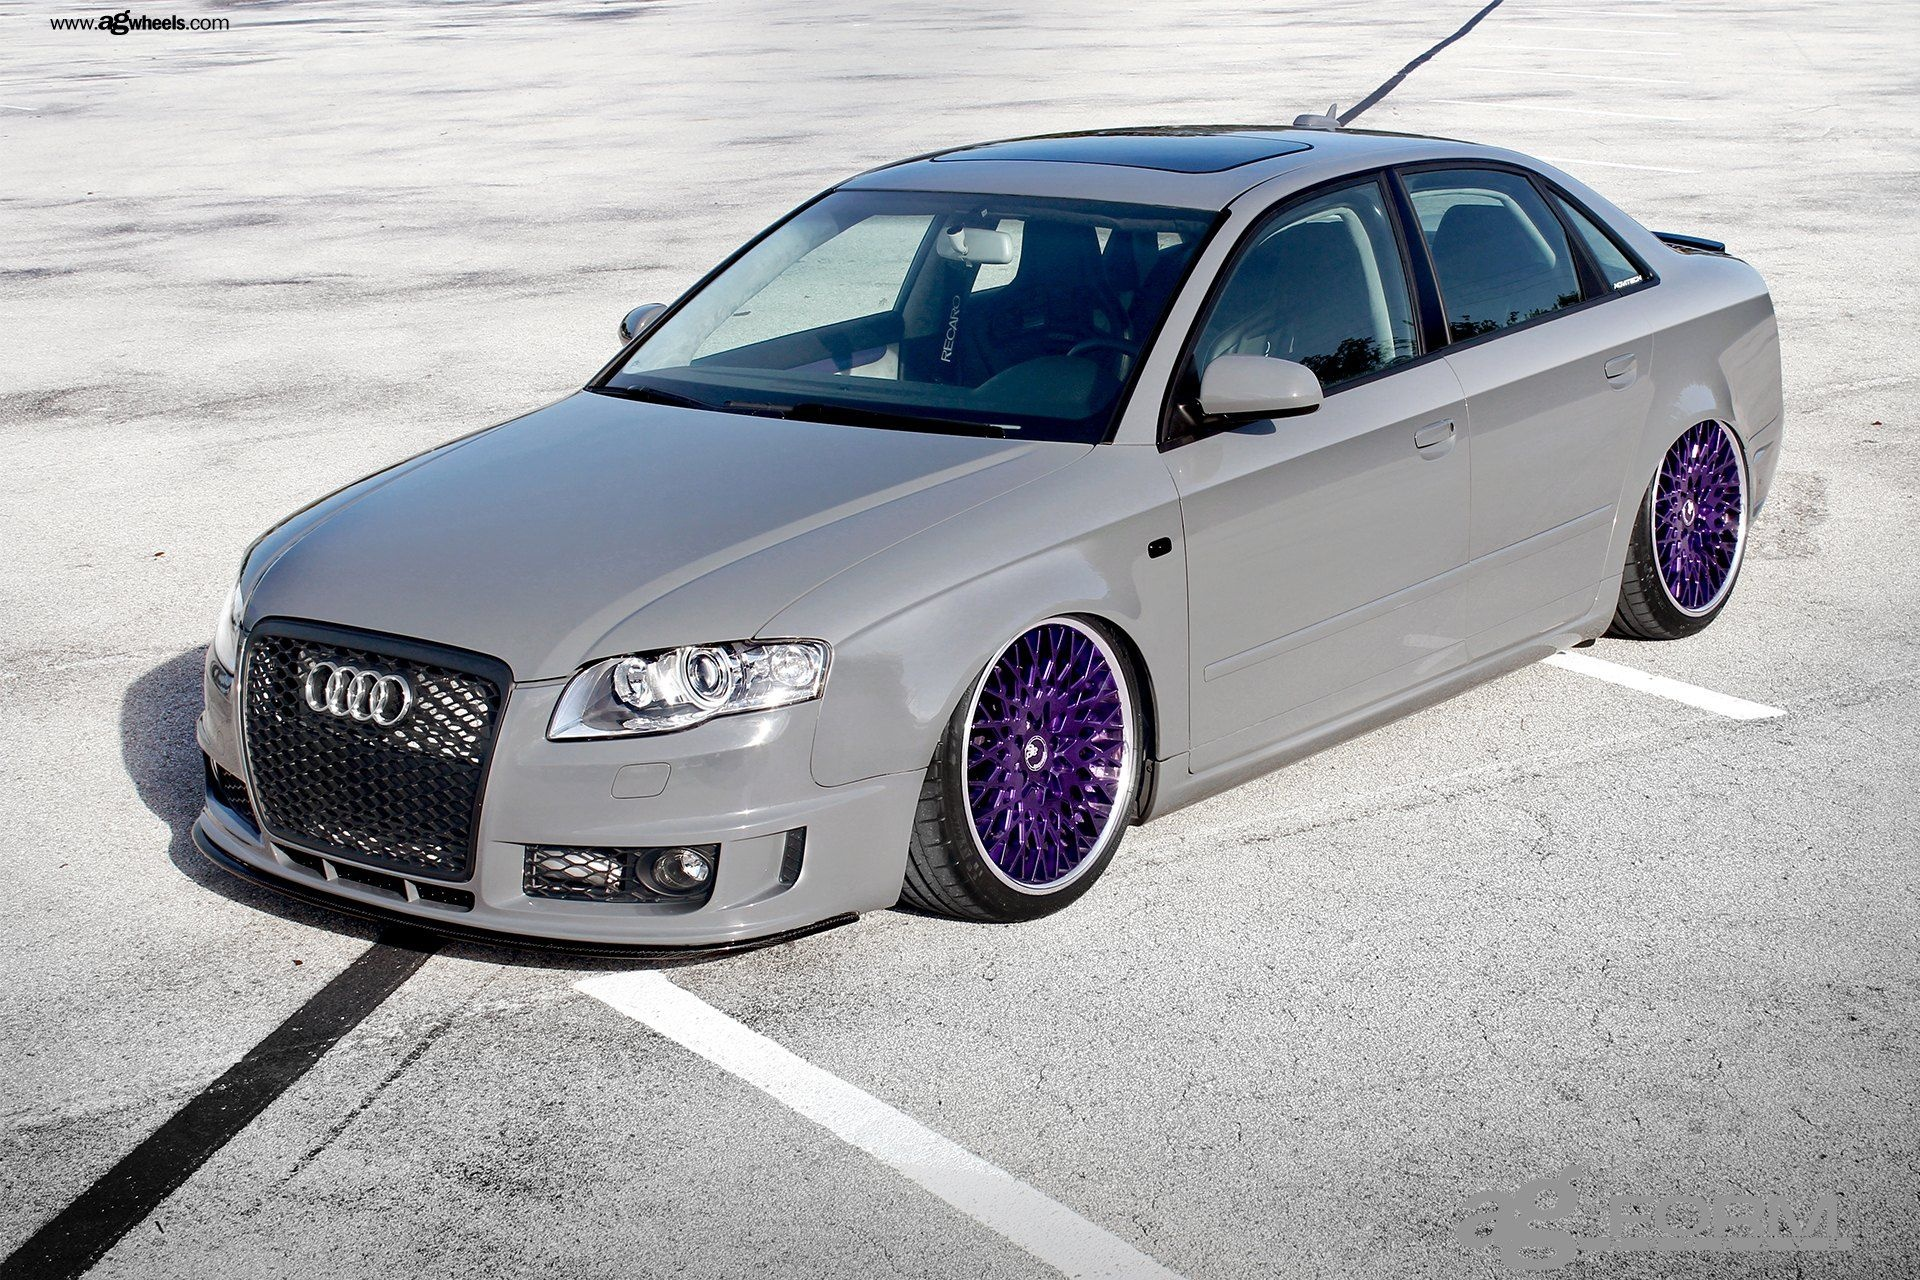 Audi A4 2004 Modified Inspirational Gray Audi A4 On Custom Purple Avant Garde Rims Yay or Nay Car-2563 Of Beautiful Audi A4 2004 Modified